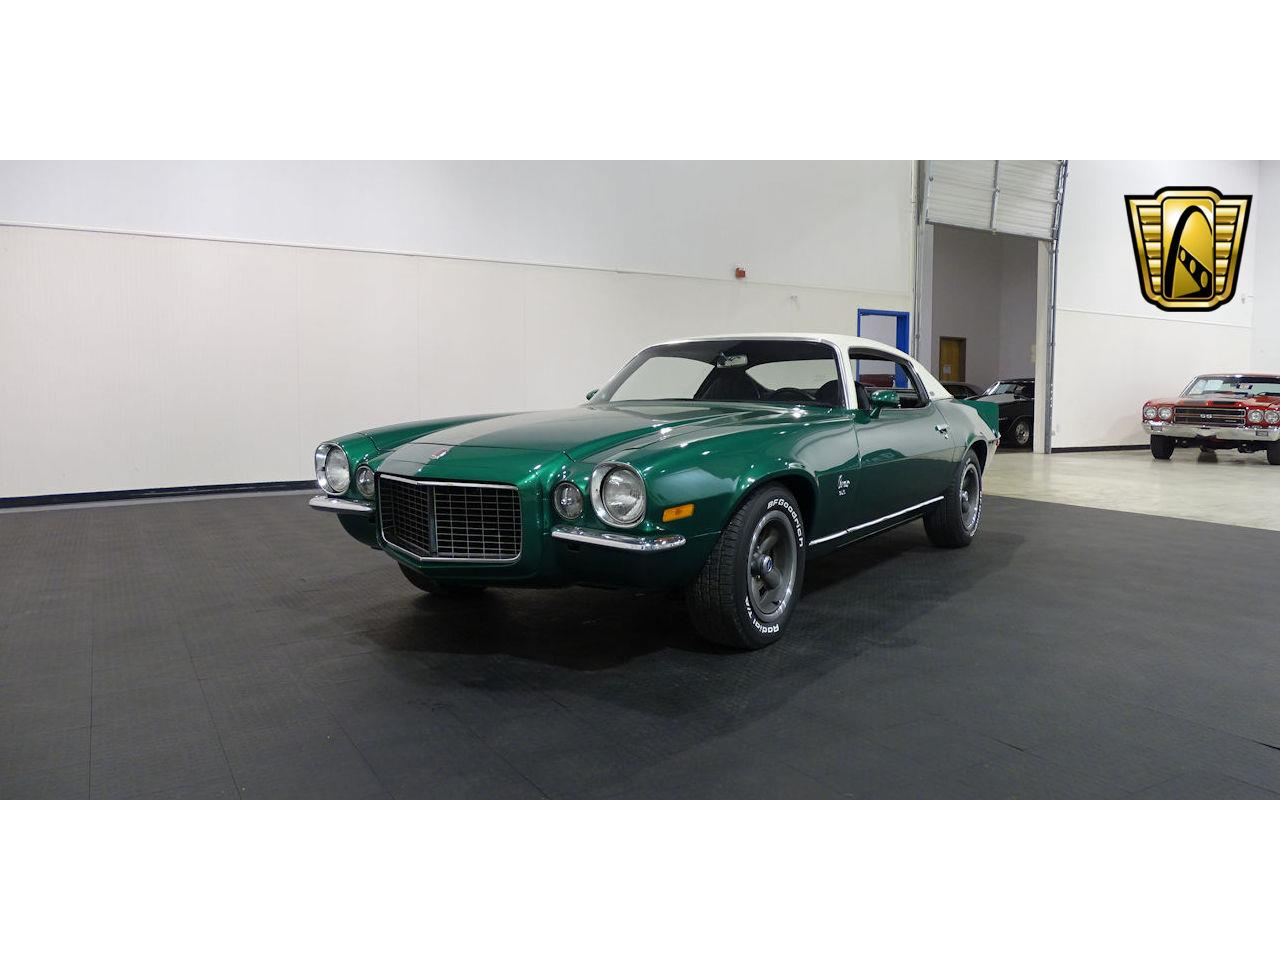 Large Picture of 1973 Chevrolet Camaro located in Indianapolis Indiana Offered by Gateway Classic Cars - Indianapolis - NE3J